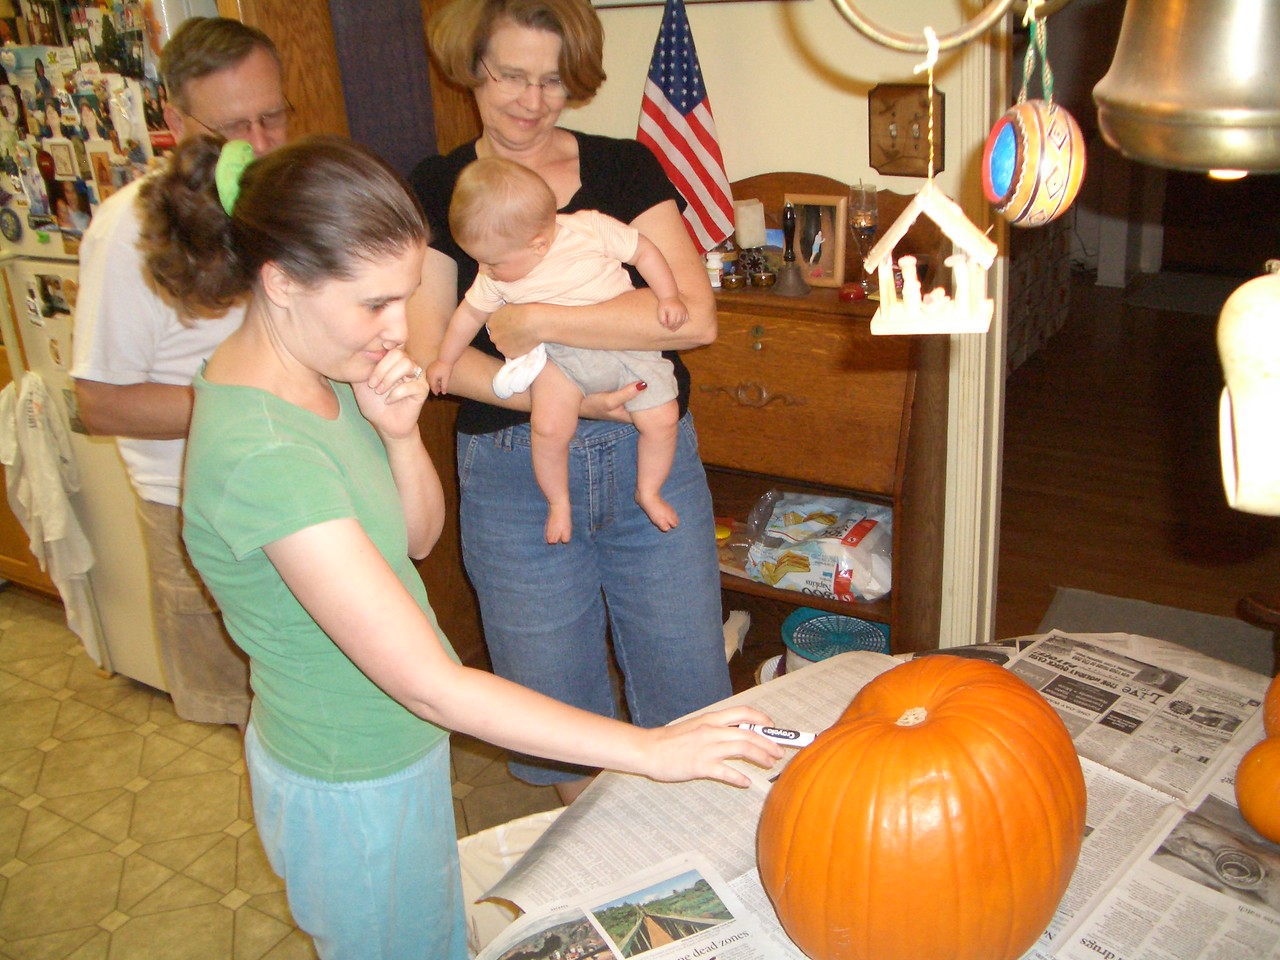 Mommy thinking about what kind of face to put on the pumpkin. 10/30/06